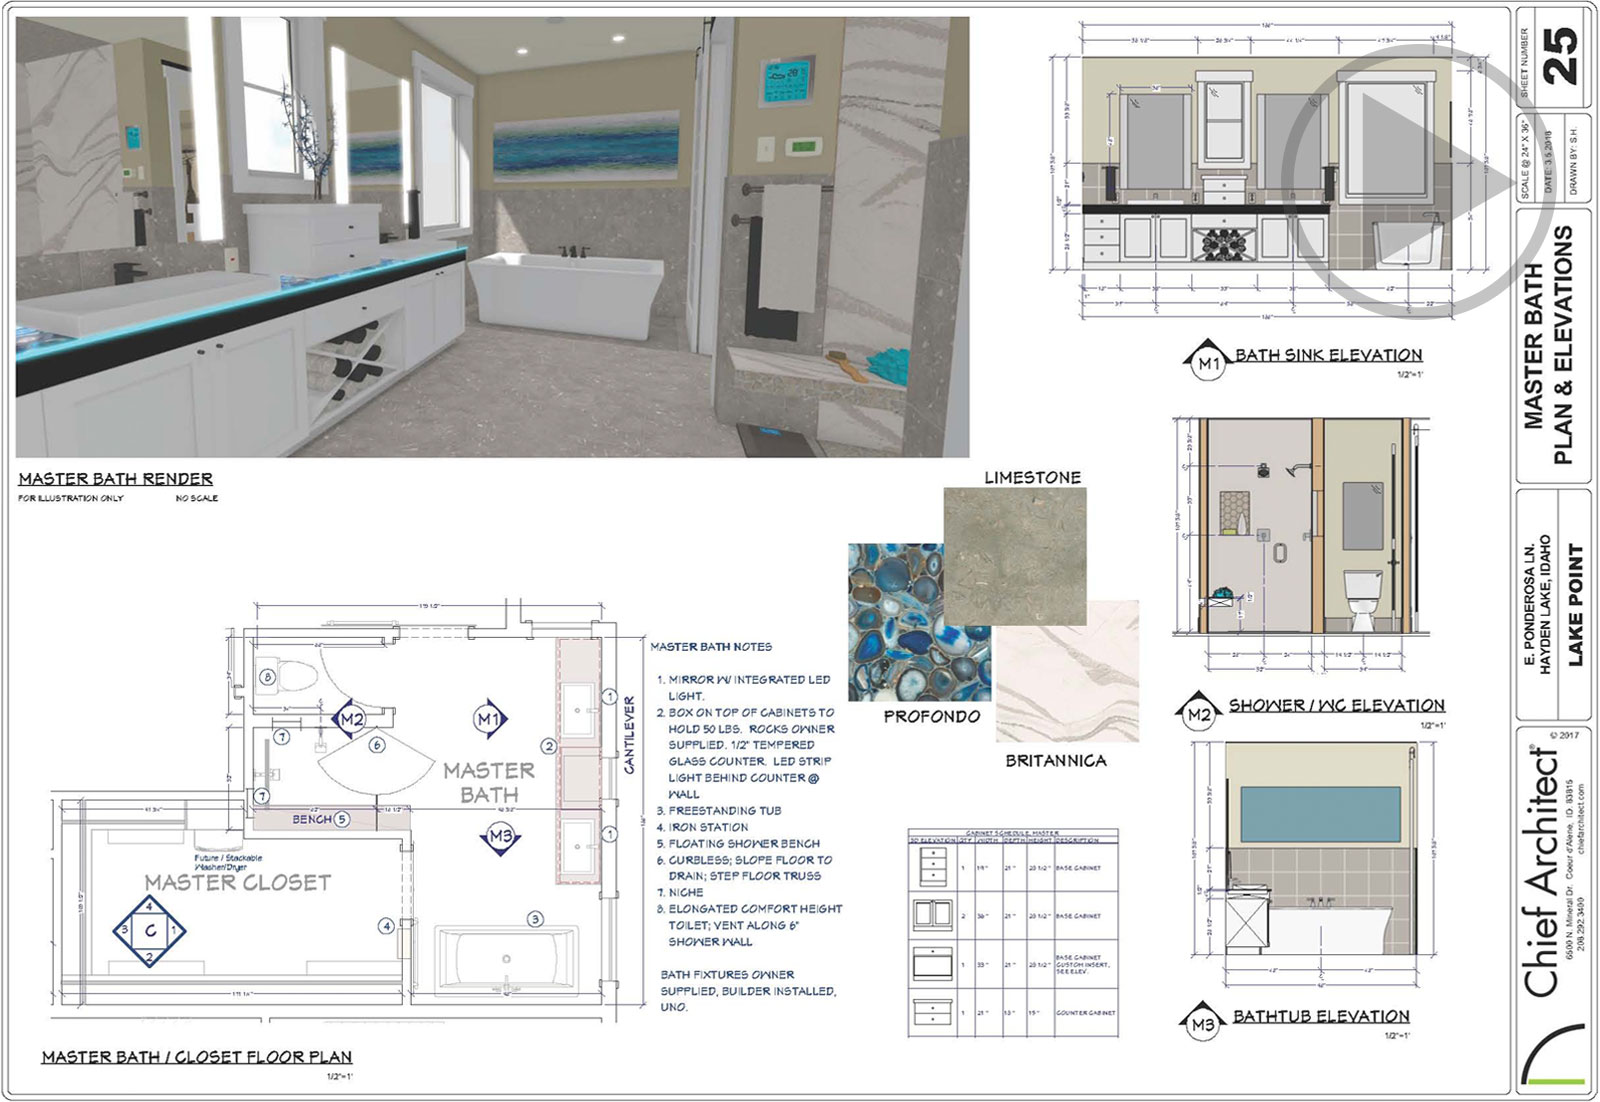 Master bath design plan set with elevations, floor plan, 3D rendering, and material options